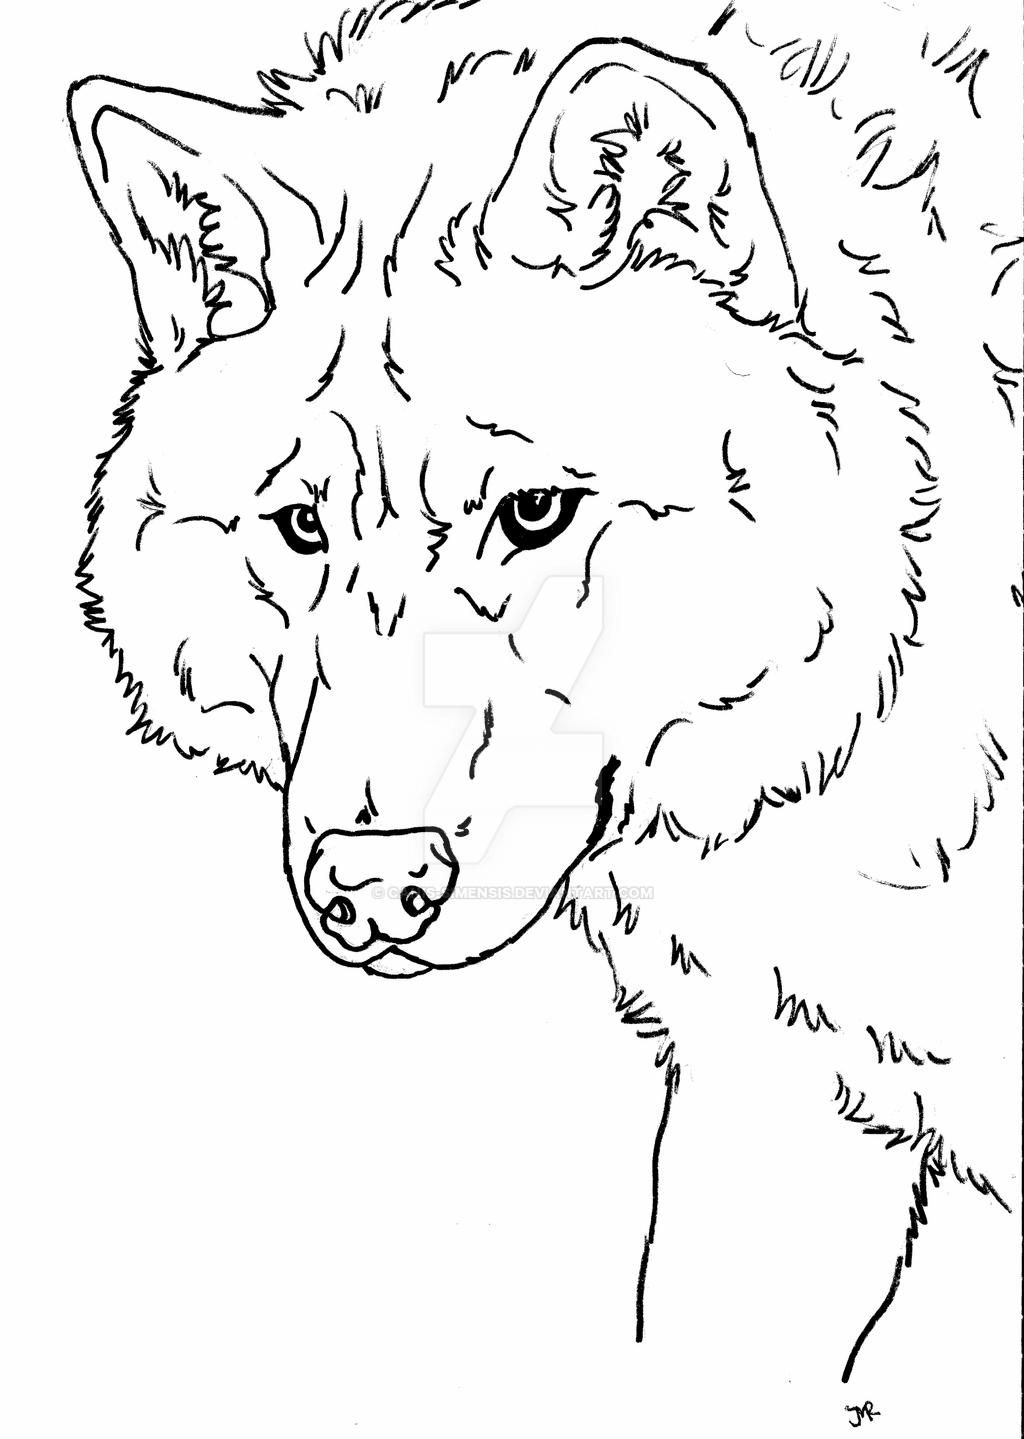 wolf puppy coloring pages wolf dog coloring page by canis simensis on deviantart wolf puppy pages coloring